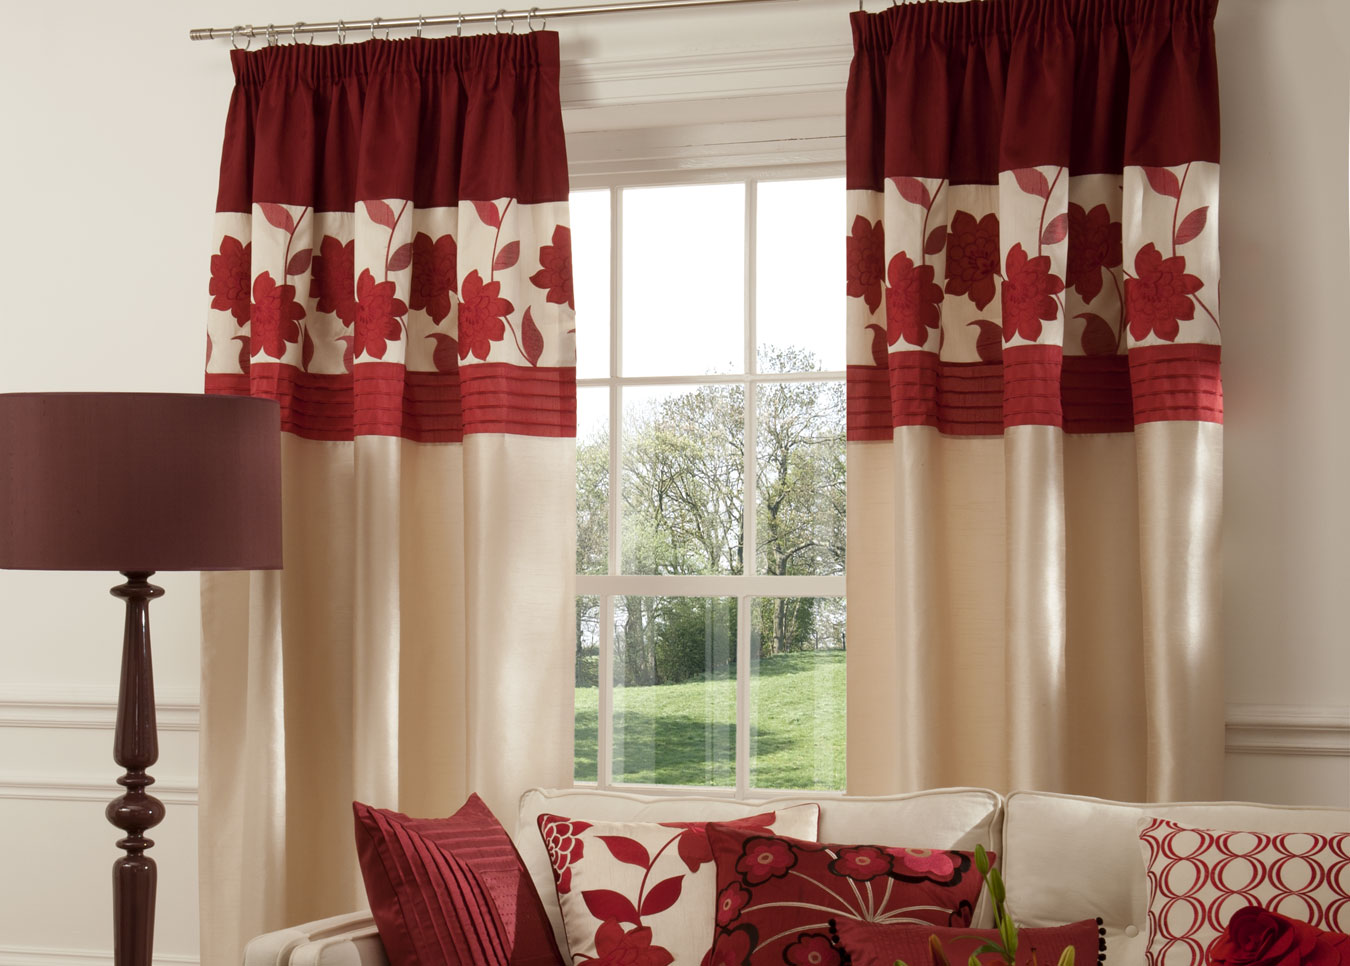 Maroon curtains for living room window treatments design ideas for Red and cream curtains for living room